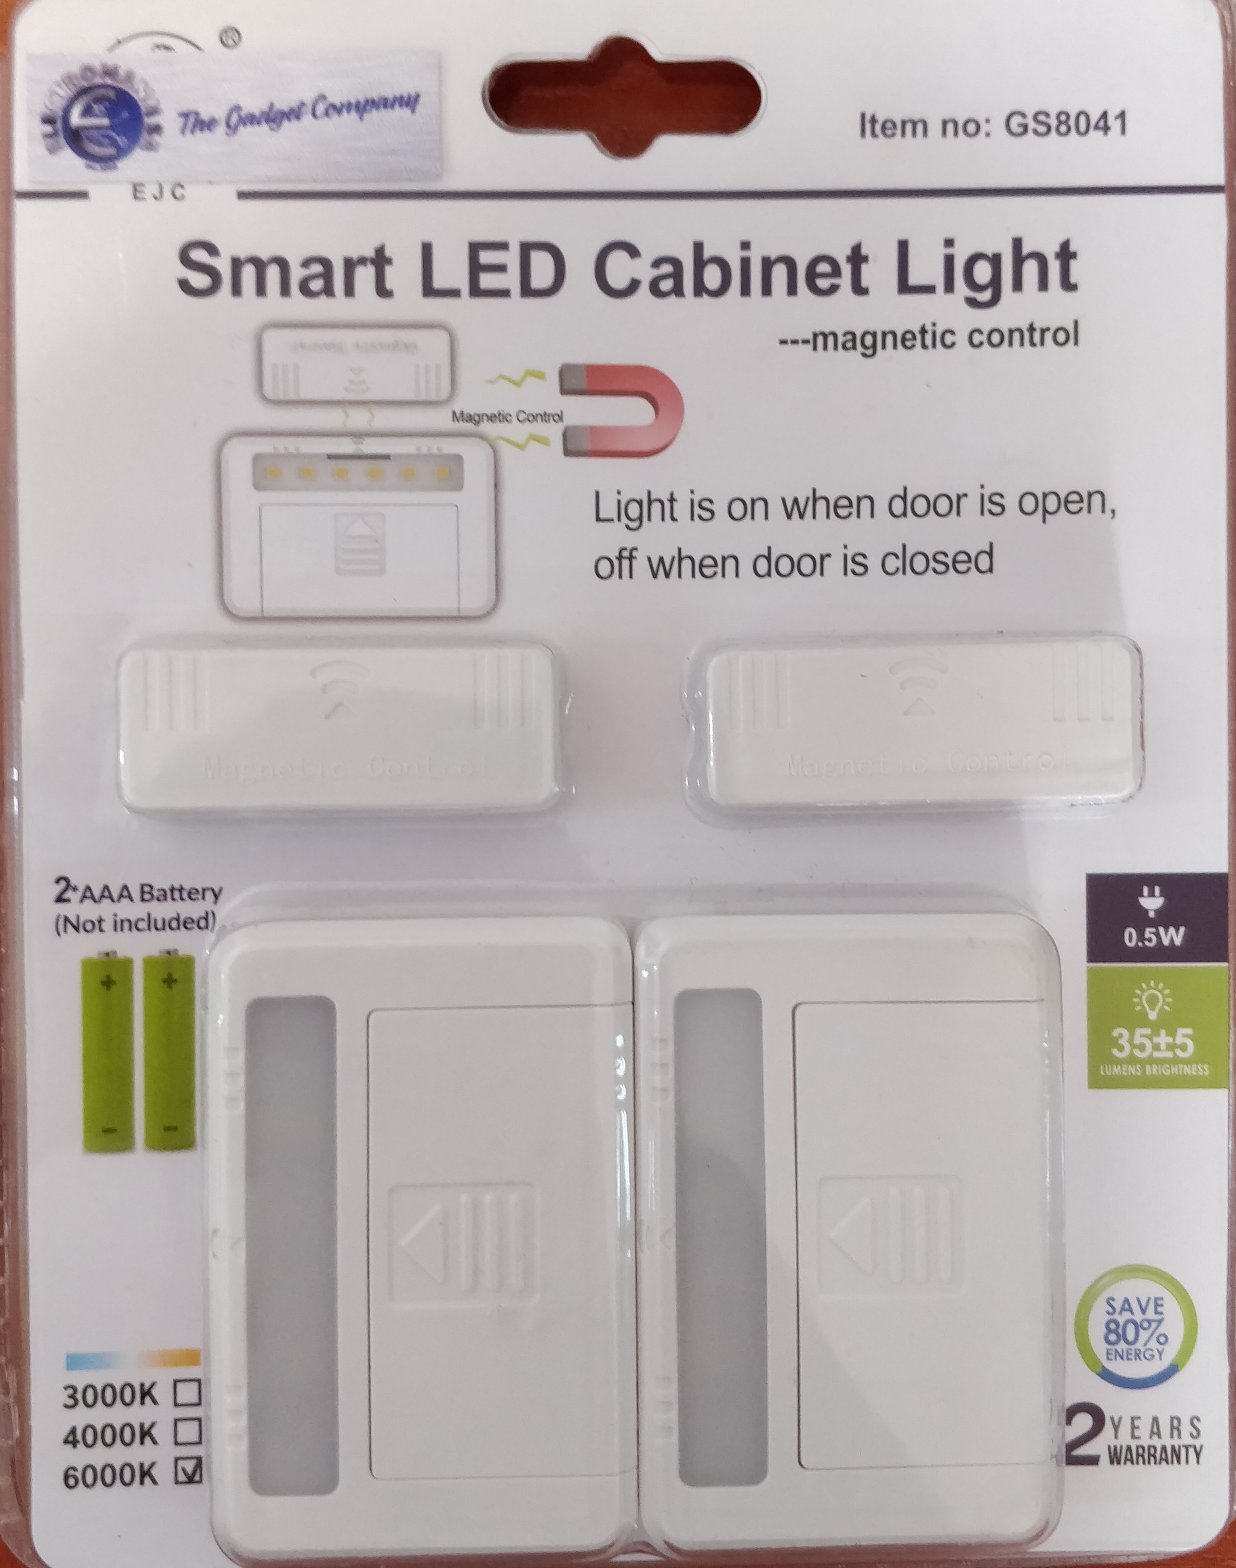 Smart LED Cabinet Light with Magnetic Control - GS8041